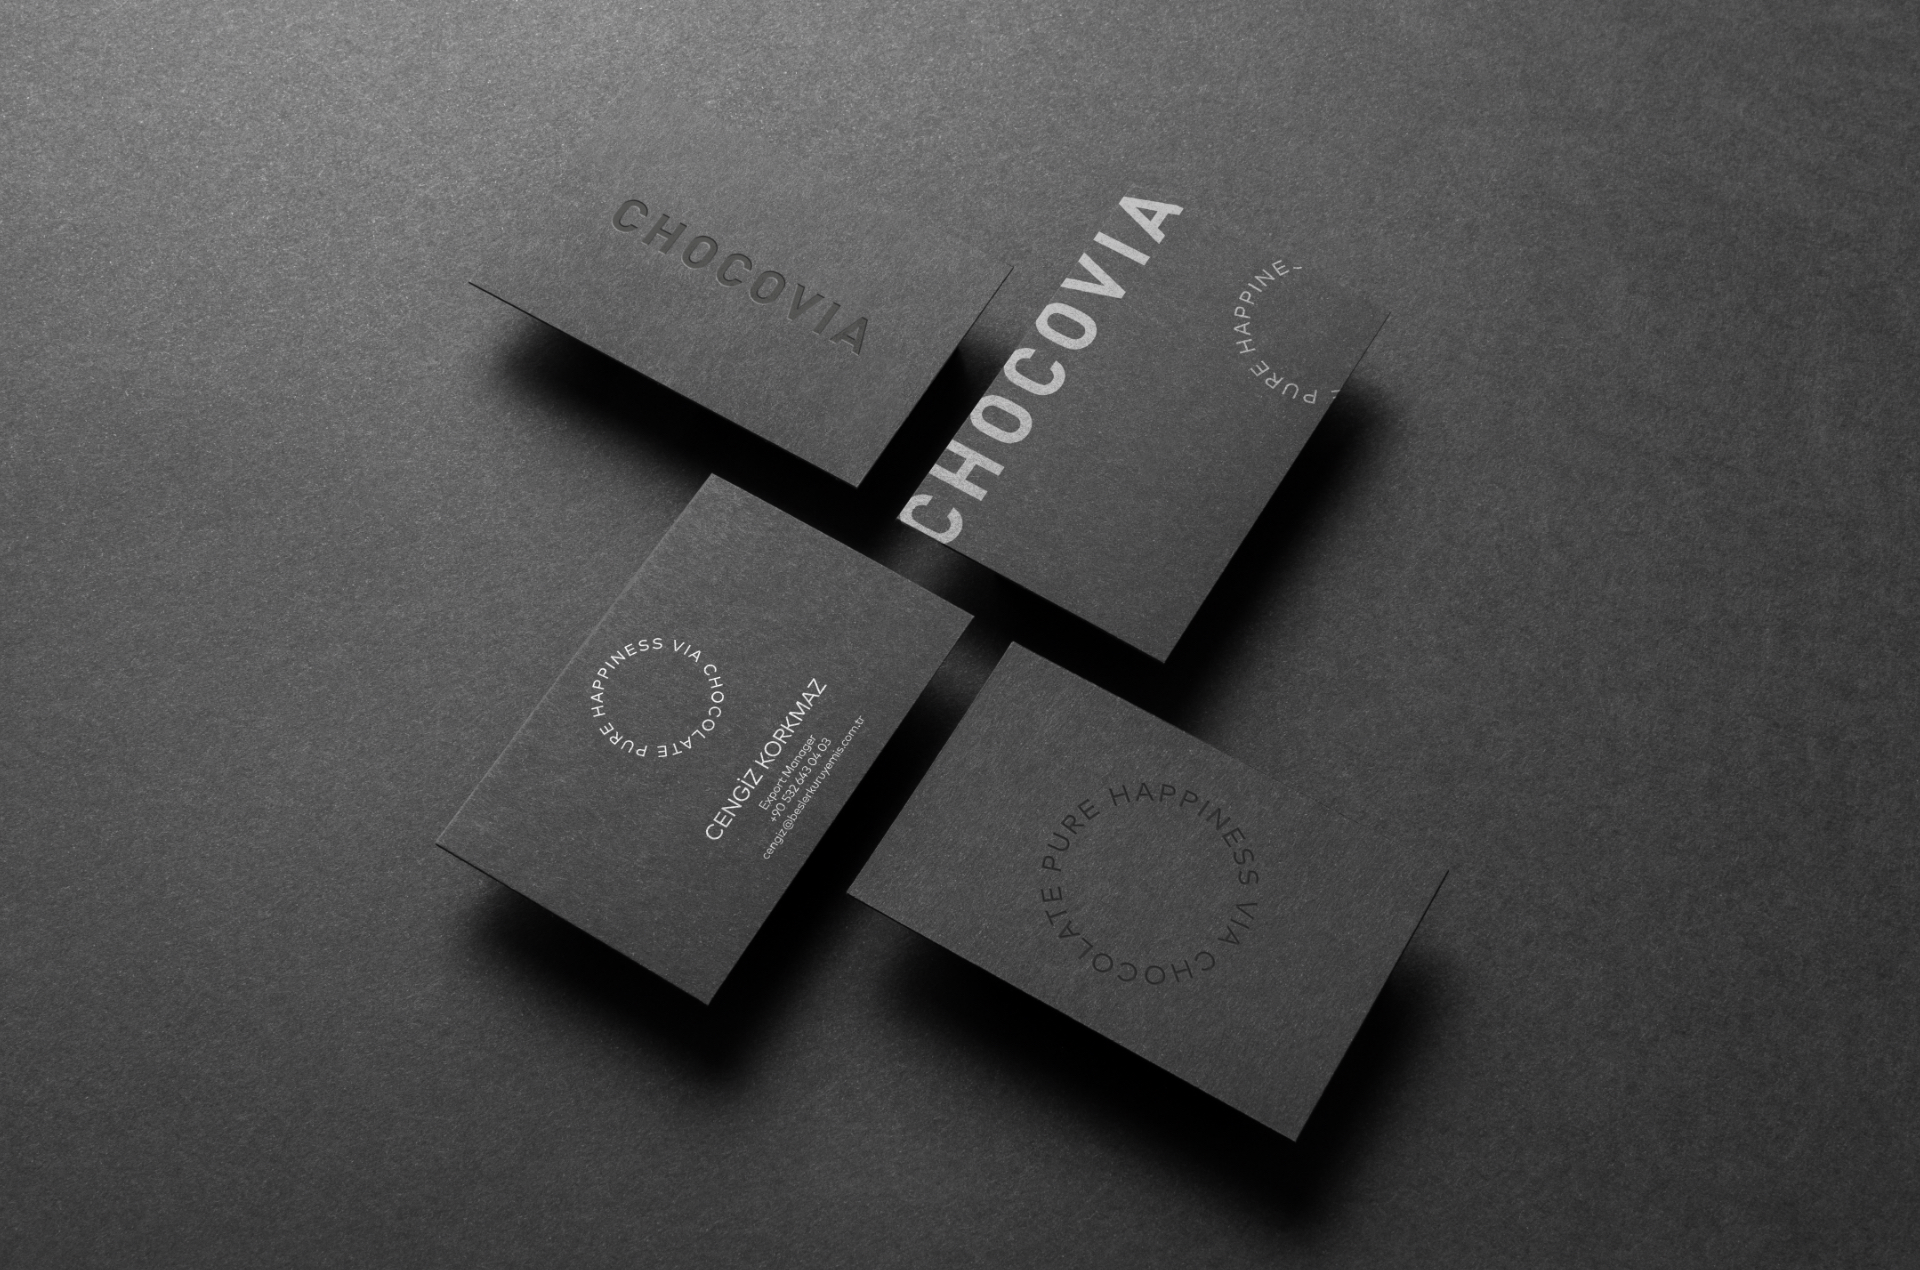 Design Creates New Chocolate Branding for Chocovia